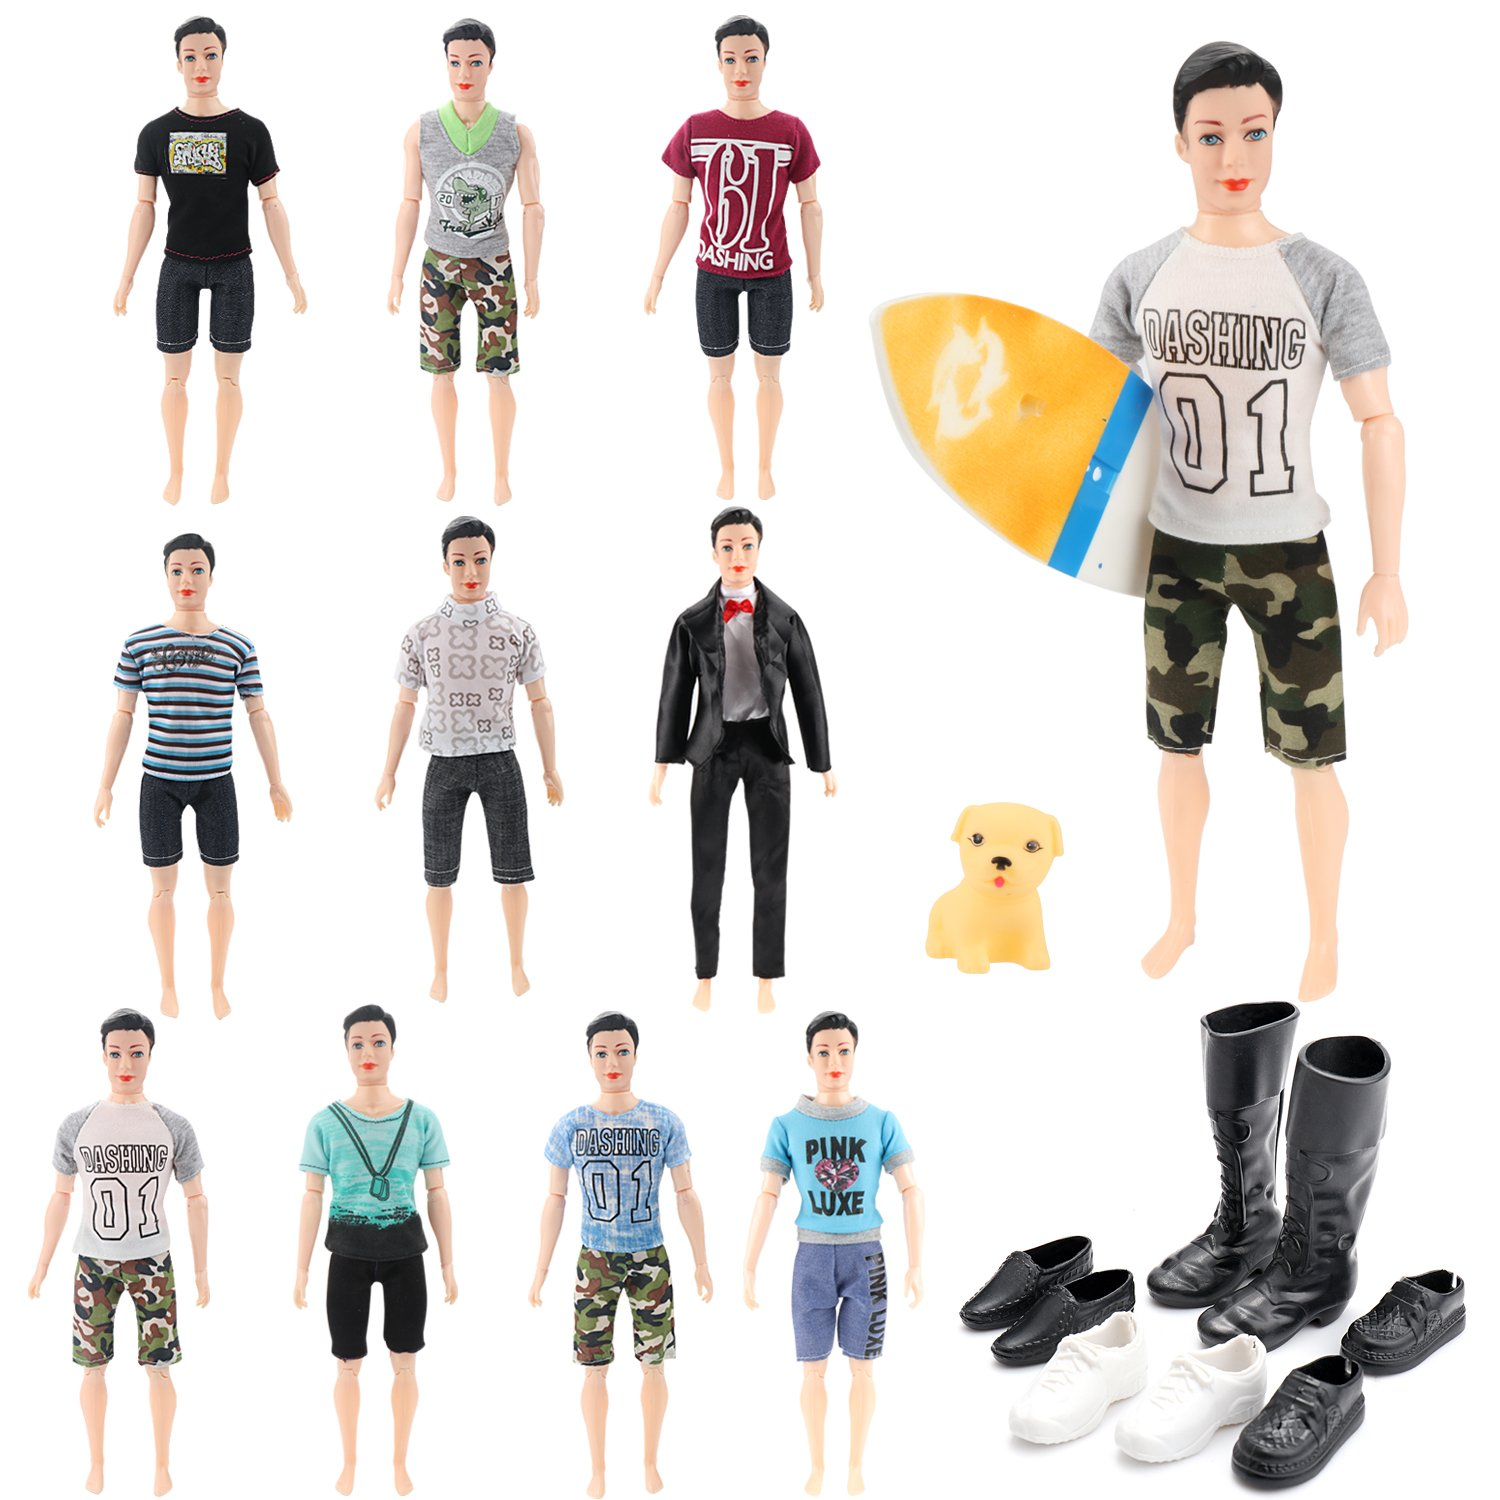 SOTOGO 30 Pcs Ken Clothes Set Include 10 Set Doll Casual/Career Wear Clothes Jacket Pants Outfits with Dog, surfboard and 4 Pairs of Shoes